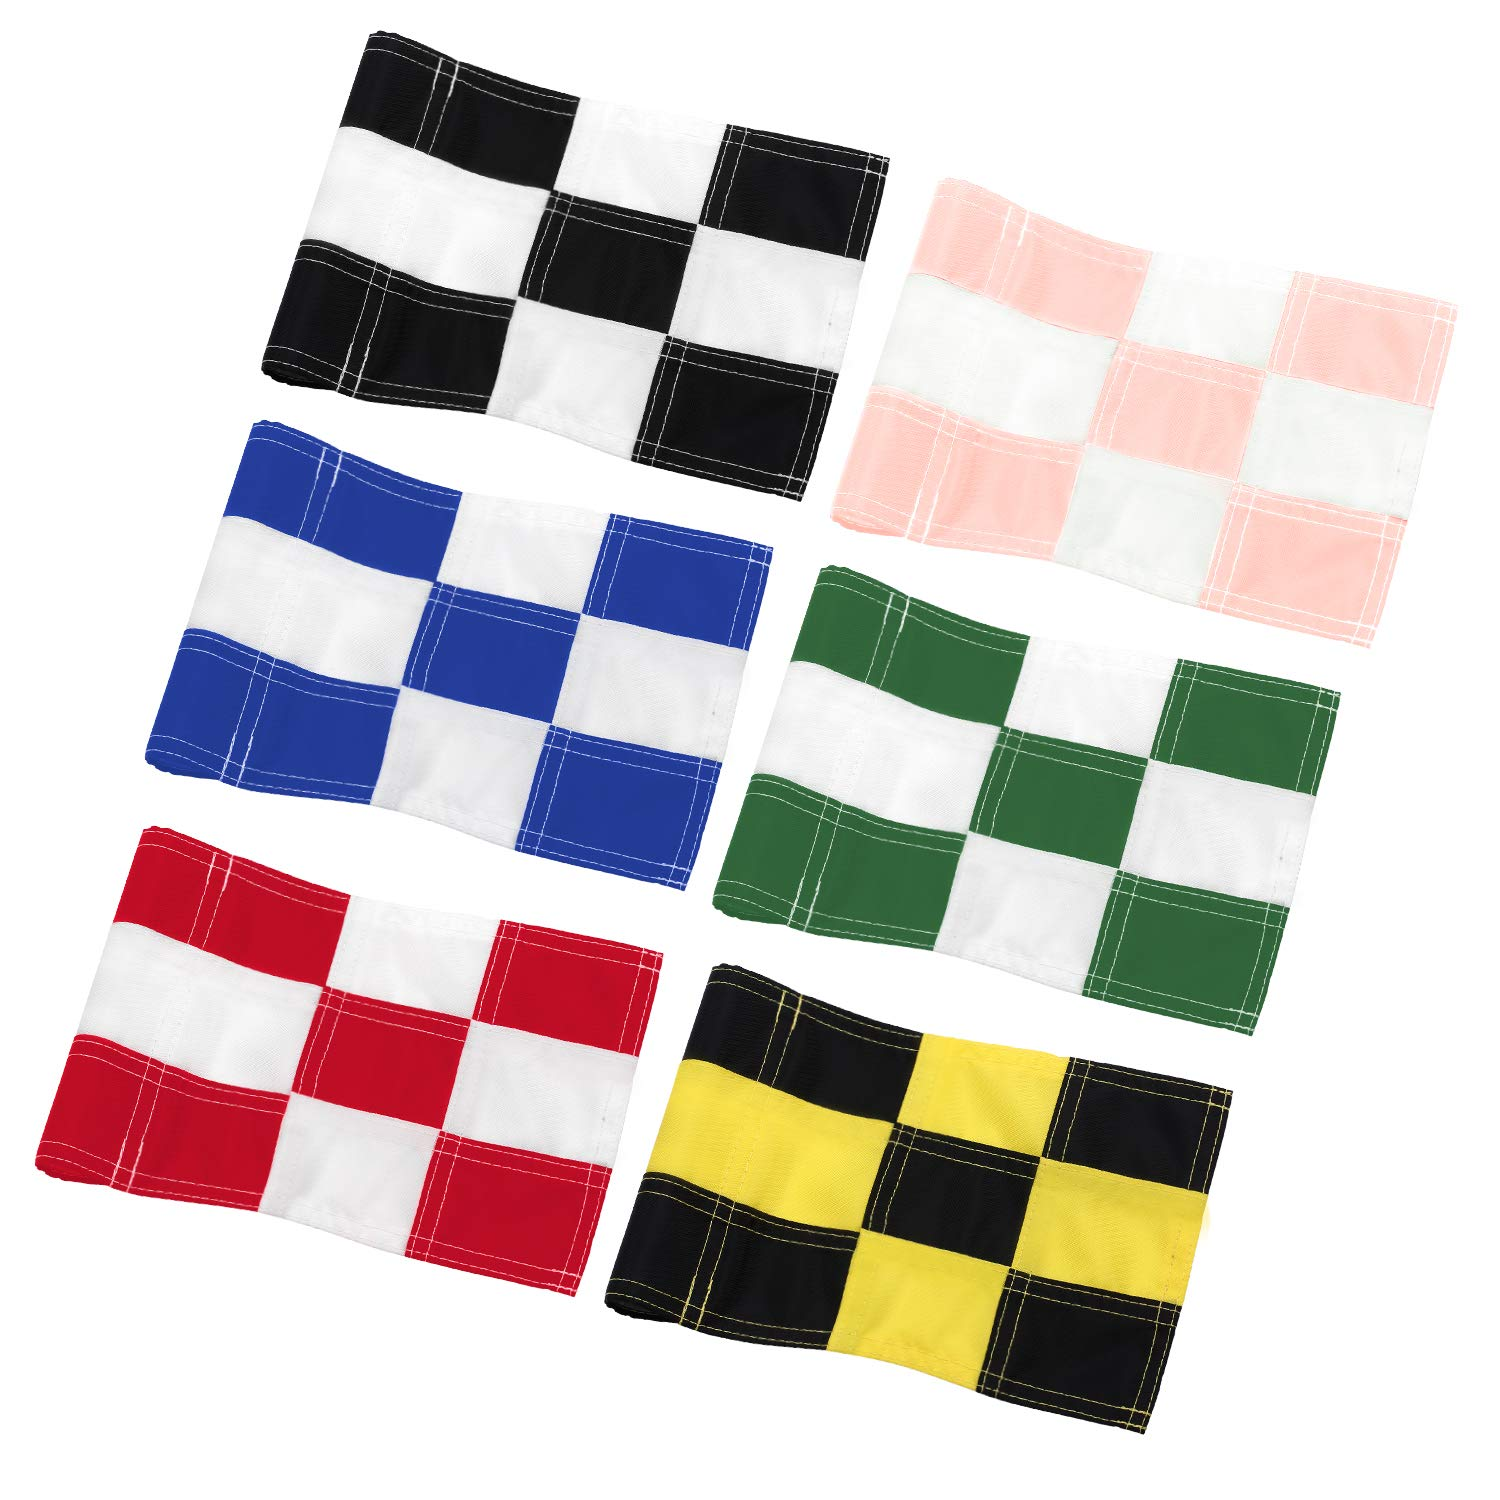 KINGTOP Checkered Golf Flag with Plastic Insert, Putting Green Flags for Yard, Indoor/Outdoor, Garden Pin Flags, 420D Premium Nylon Flag, 8'' L x 6'' H, 6-Pack by KINGTOP